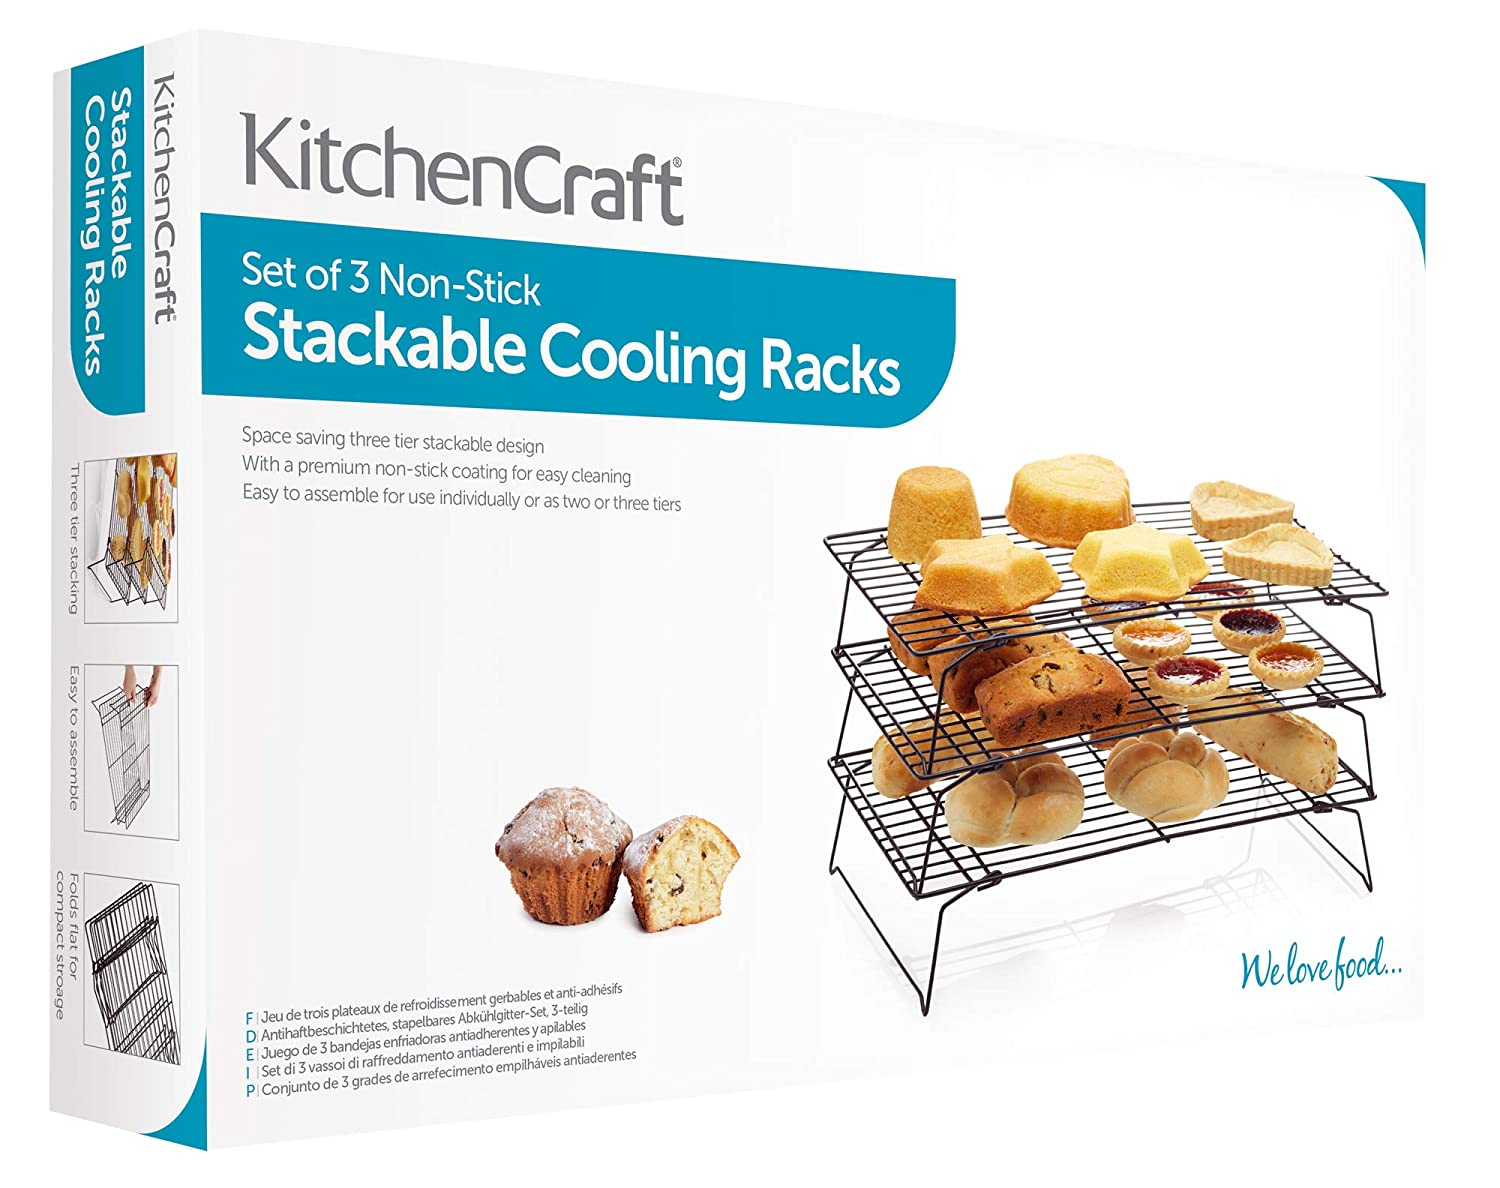 Amazon.com: Kitchen Craft Non-Stick Three Tier Cooling Rack: Home & Kitchen